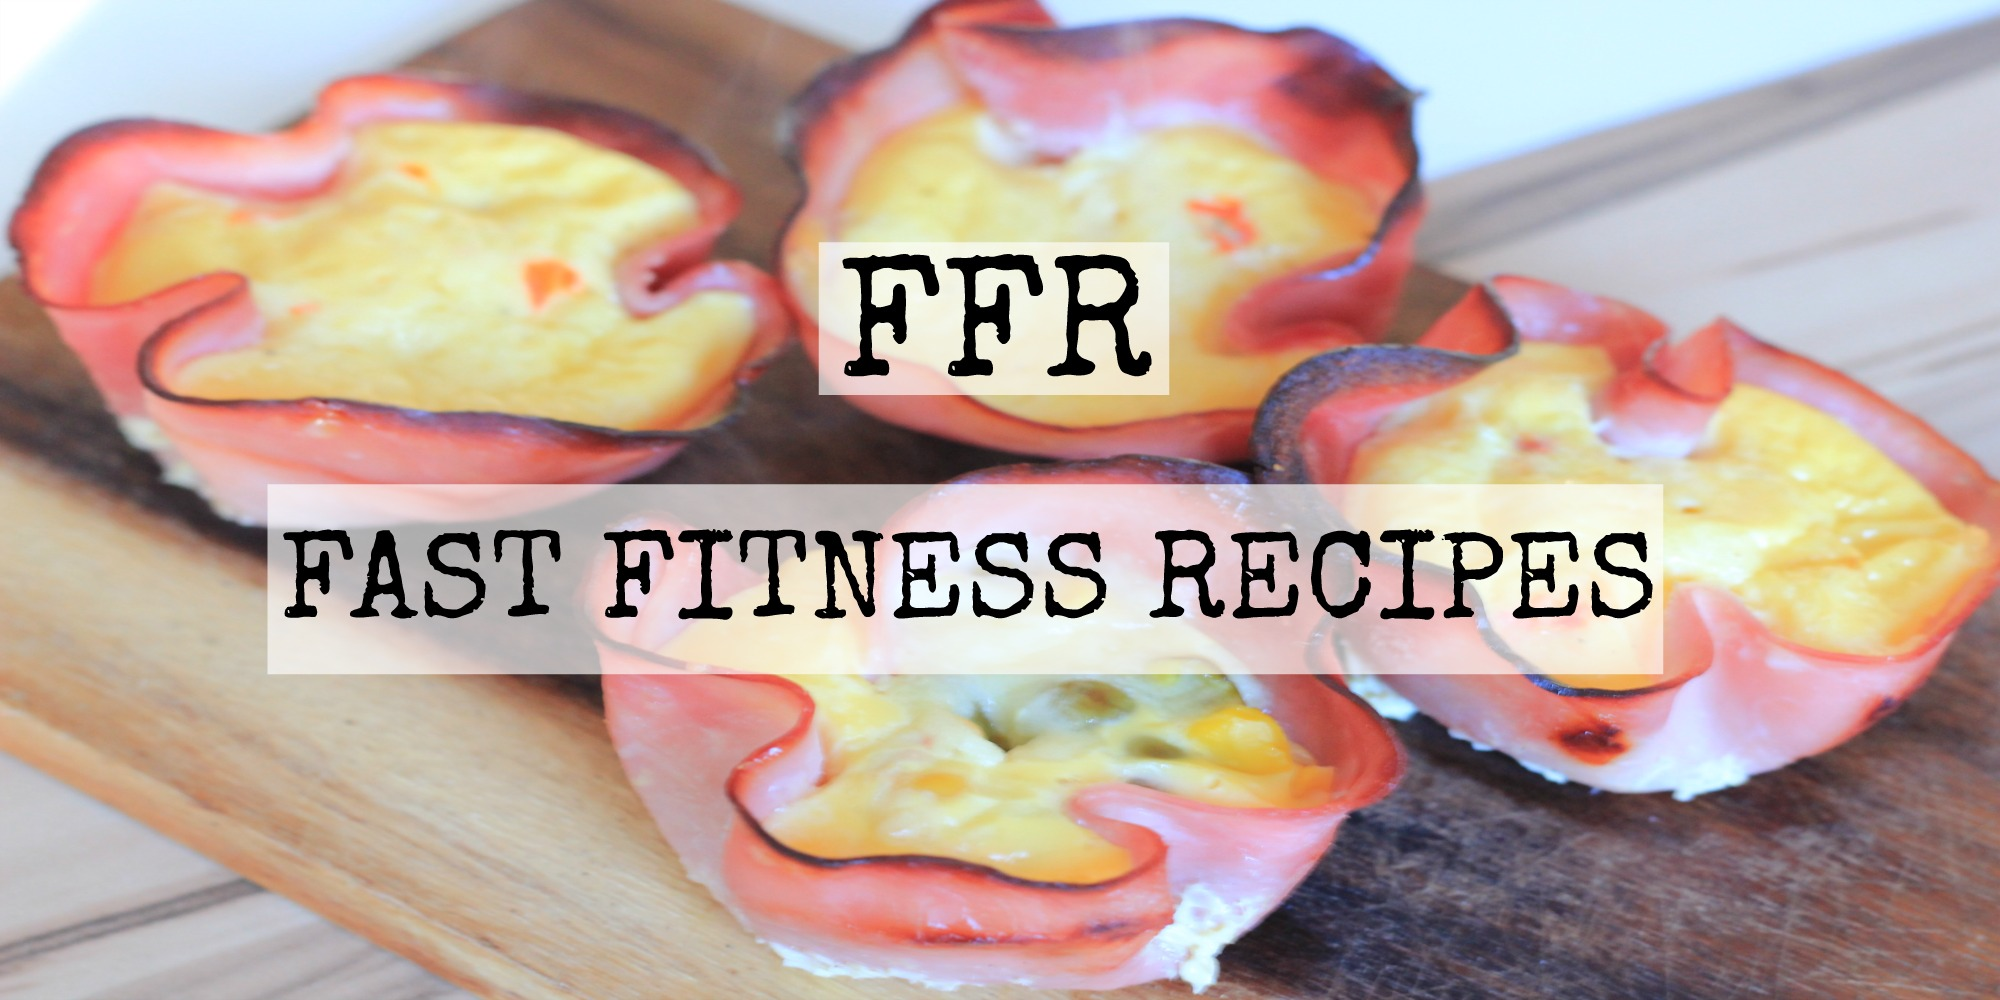 FFR-FAST FITNESS RECIPES